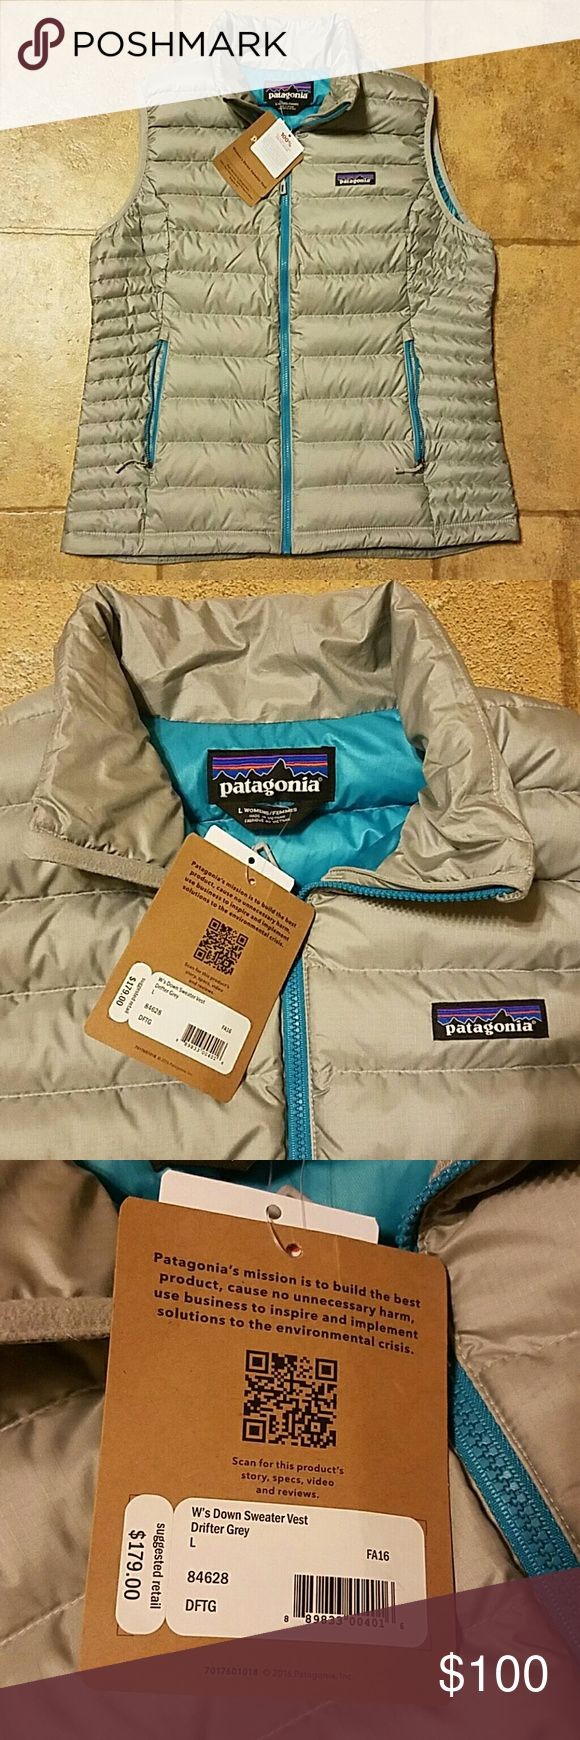 Women's sz large Patagonia down vest grey NWT New with tags Patagonia women's sz large down sweater vest. Color is drifter grey. Patagonia Jackets & Coats